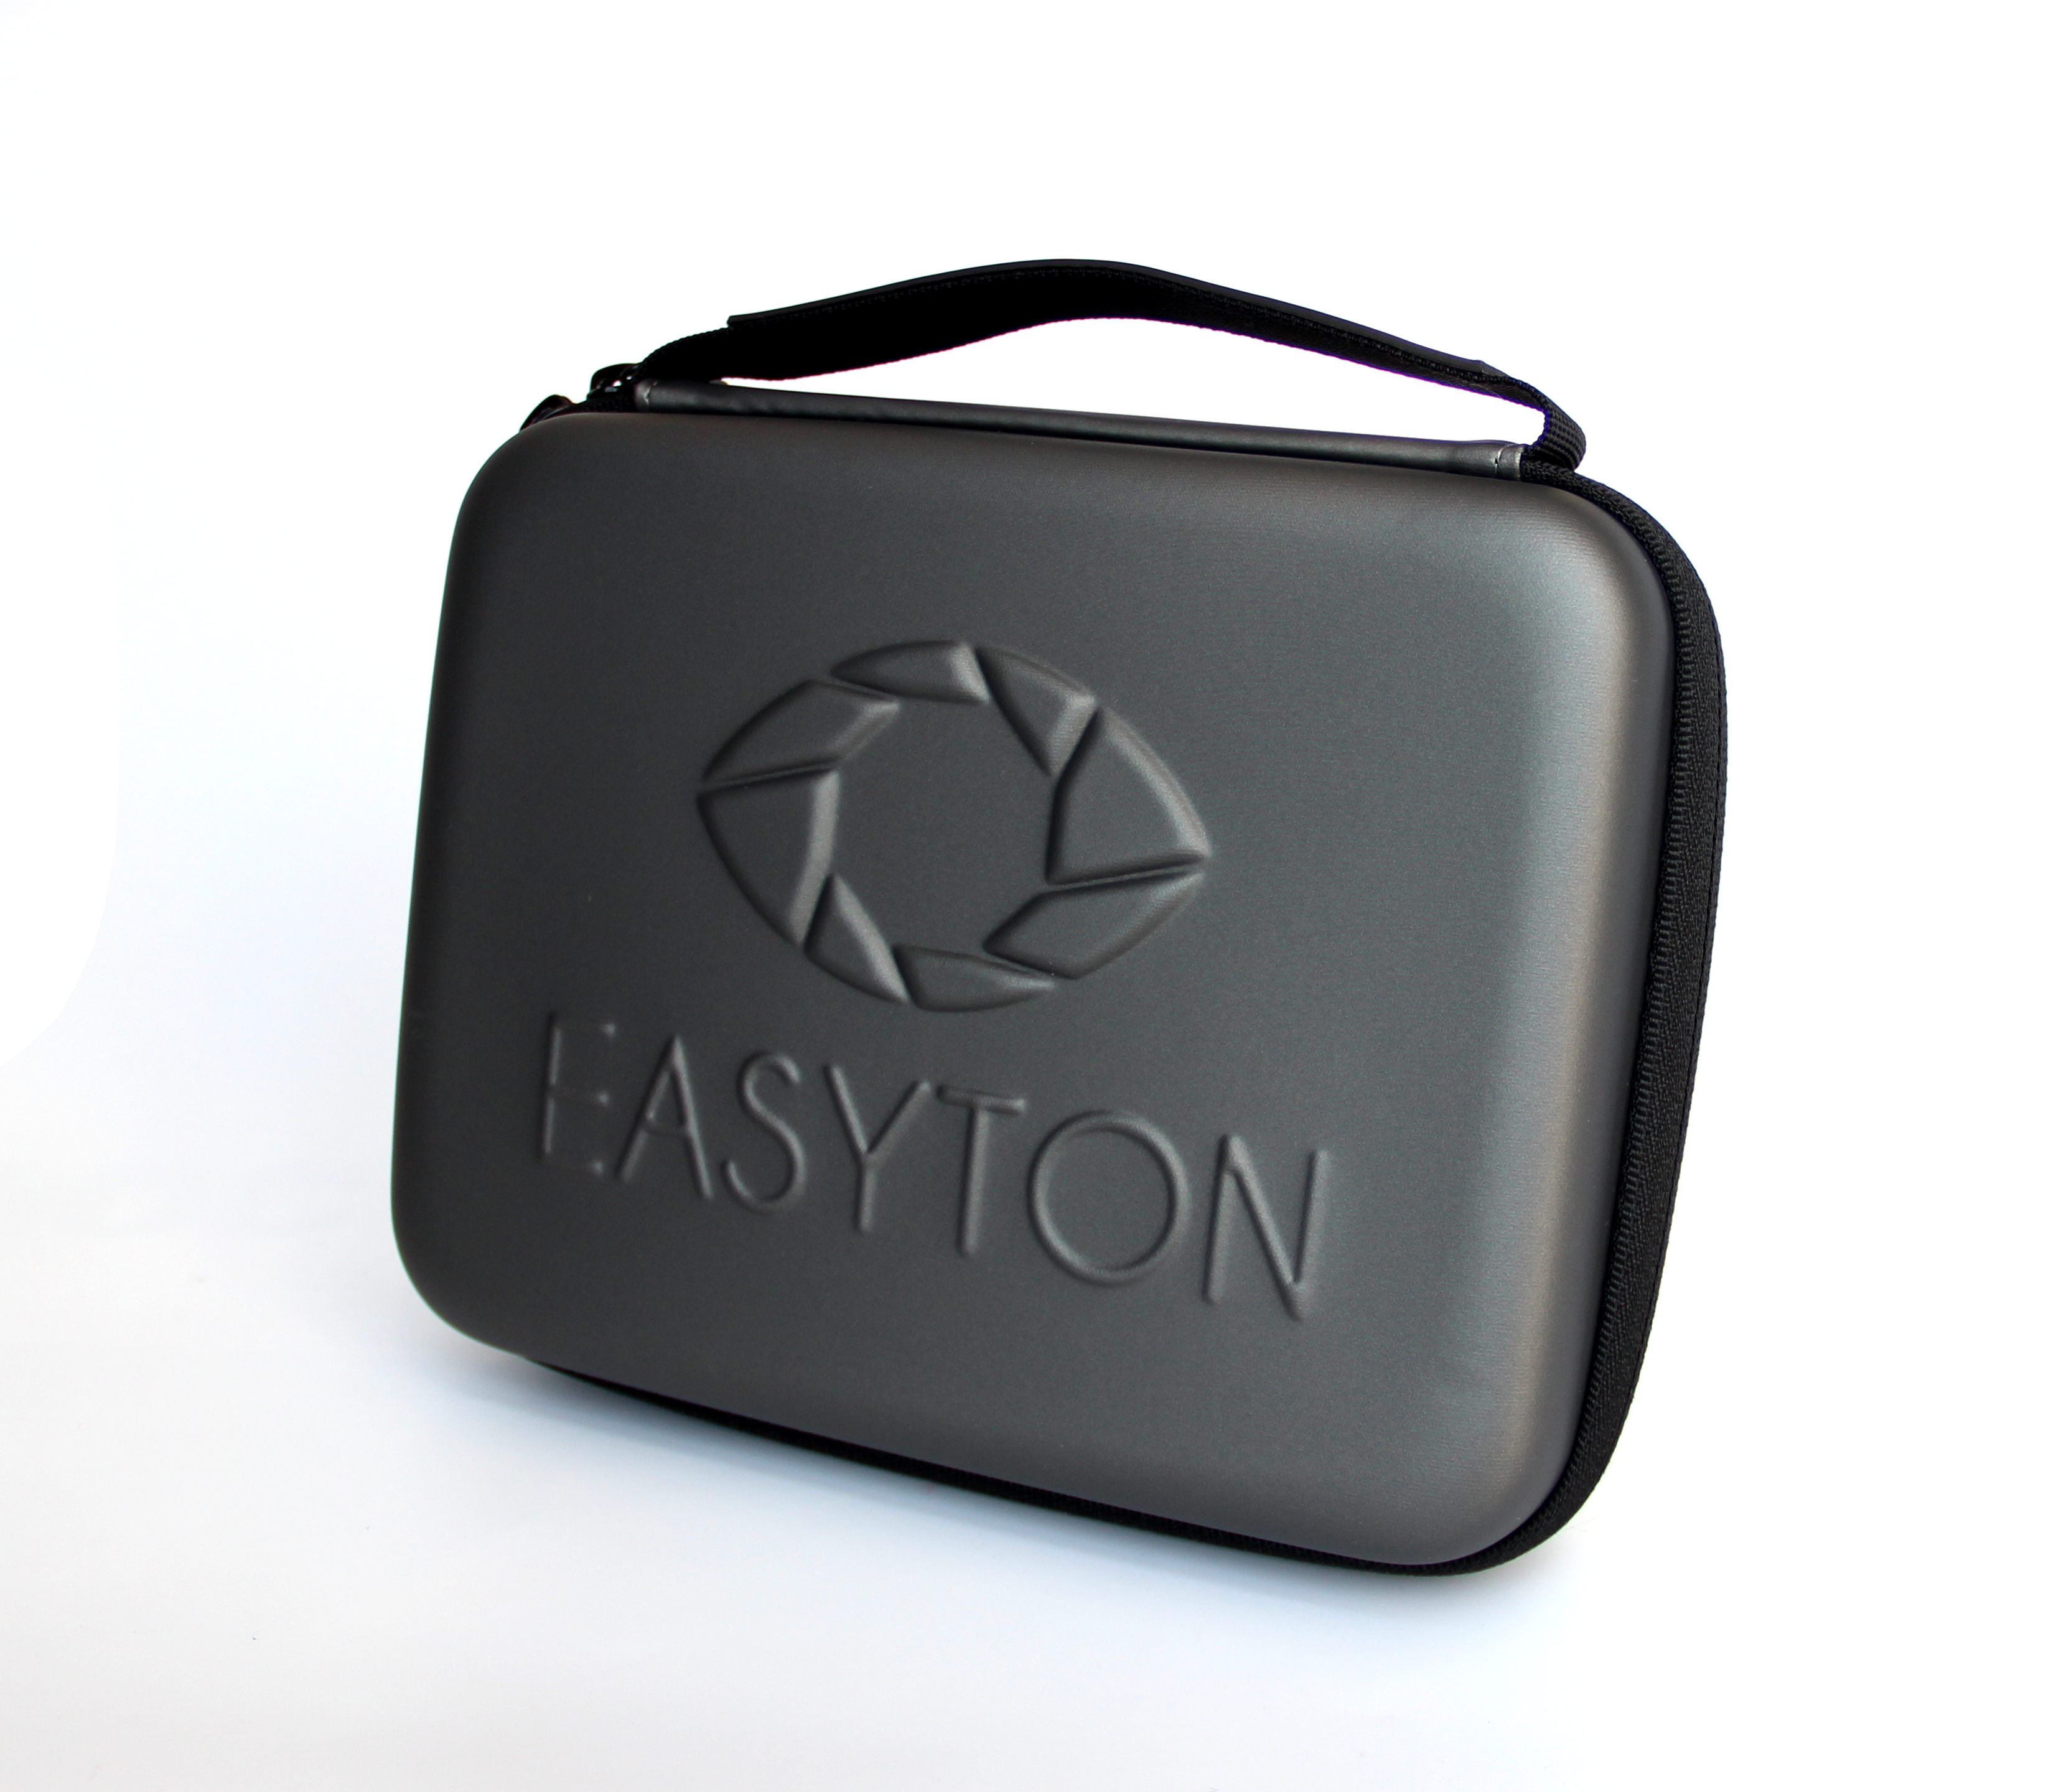 Waterproof high end EVA hard carrying case Featured Image